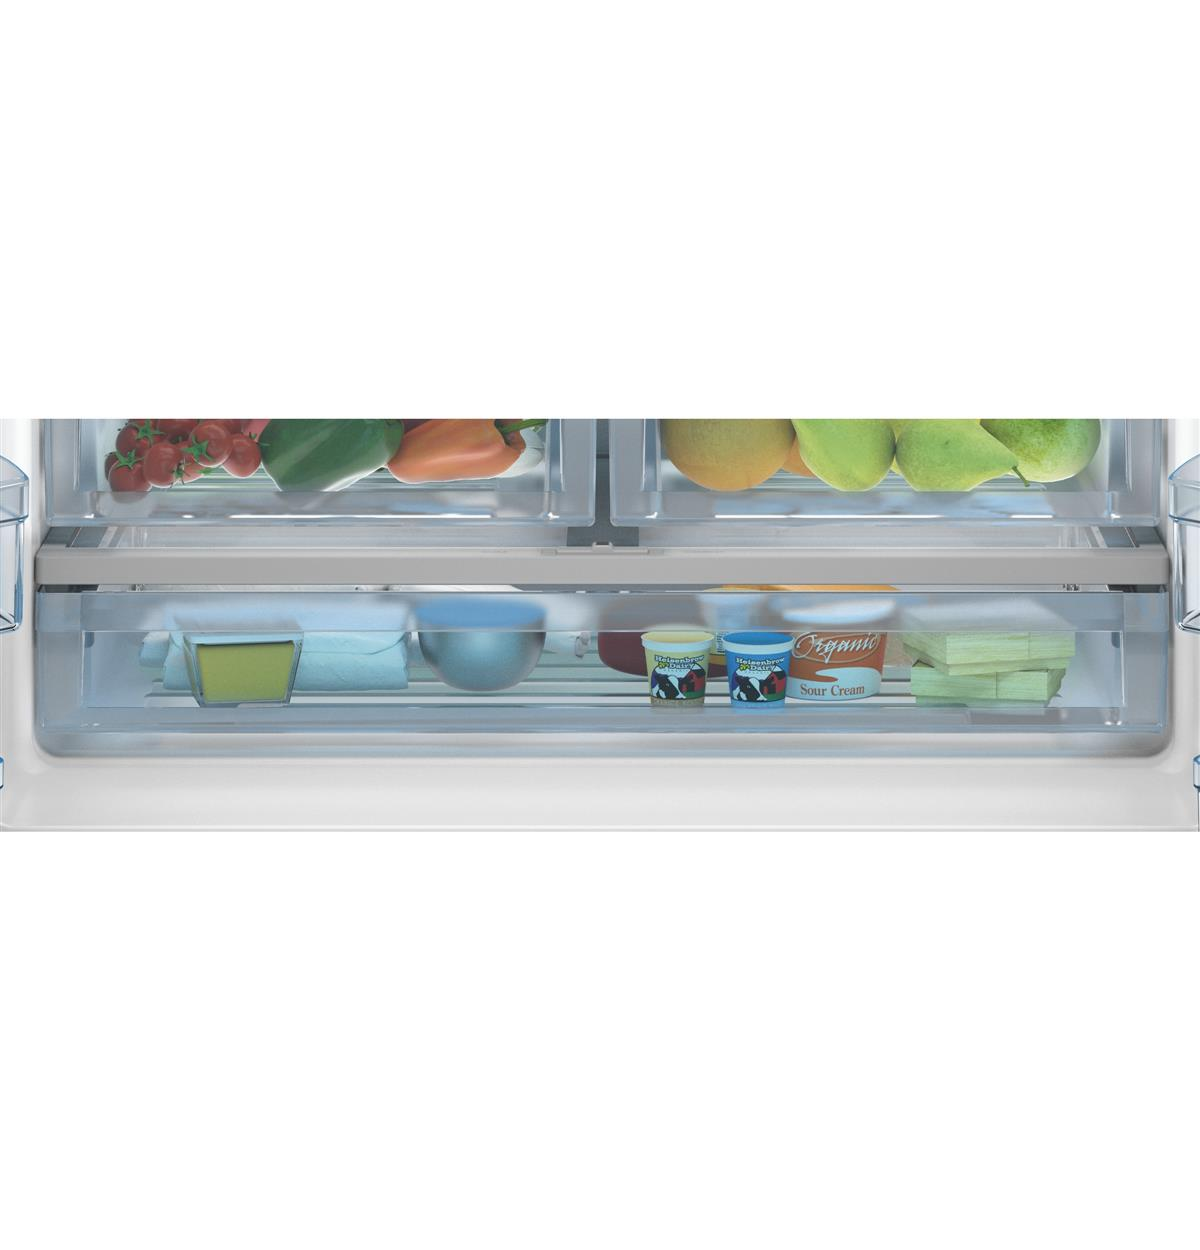 Stainless Steel Bottom-Freezer QNE27JSMSS Feature Photos